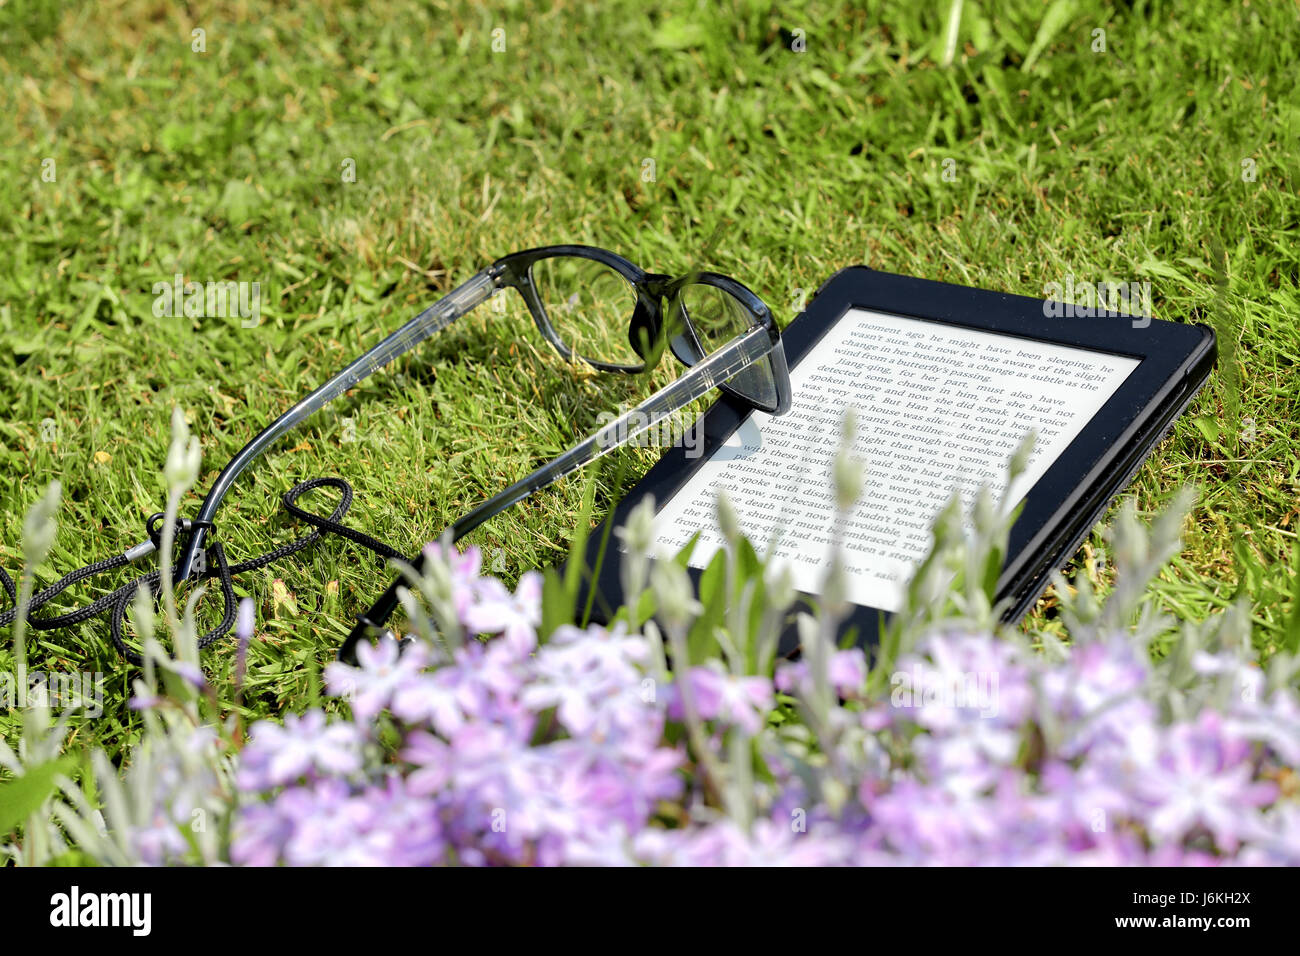 An electronic book reader and glasses on the grass Stock Photo